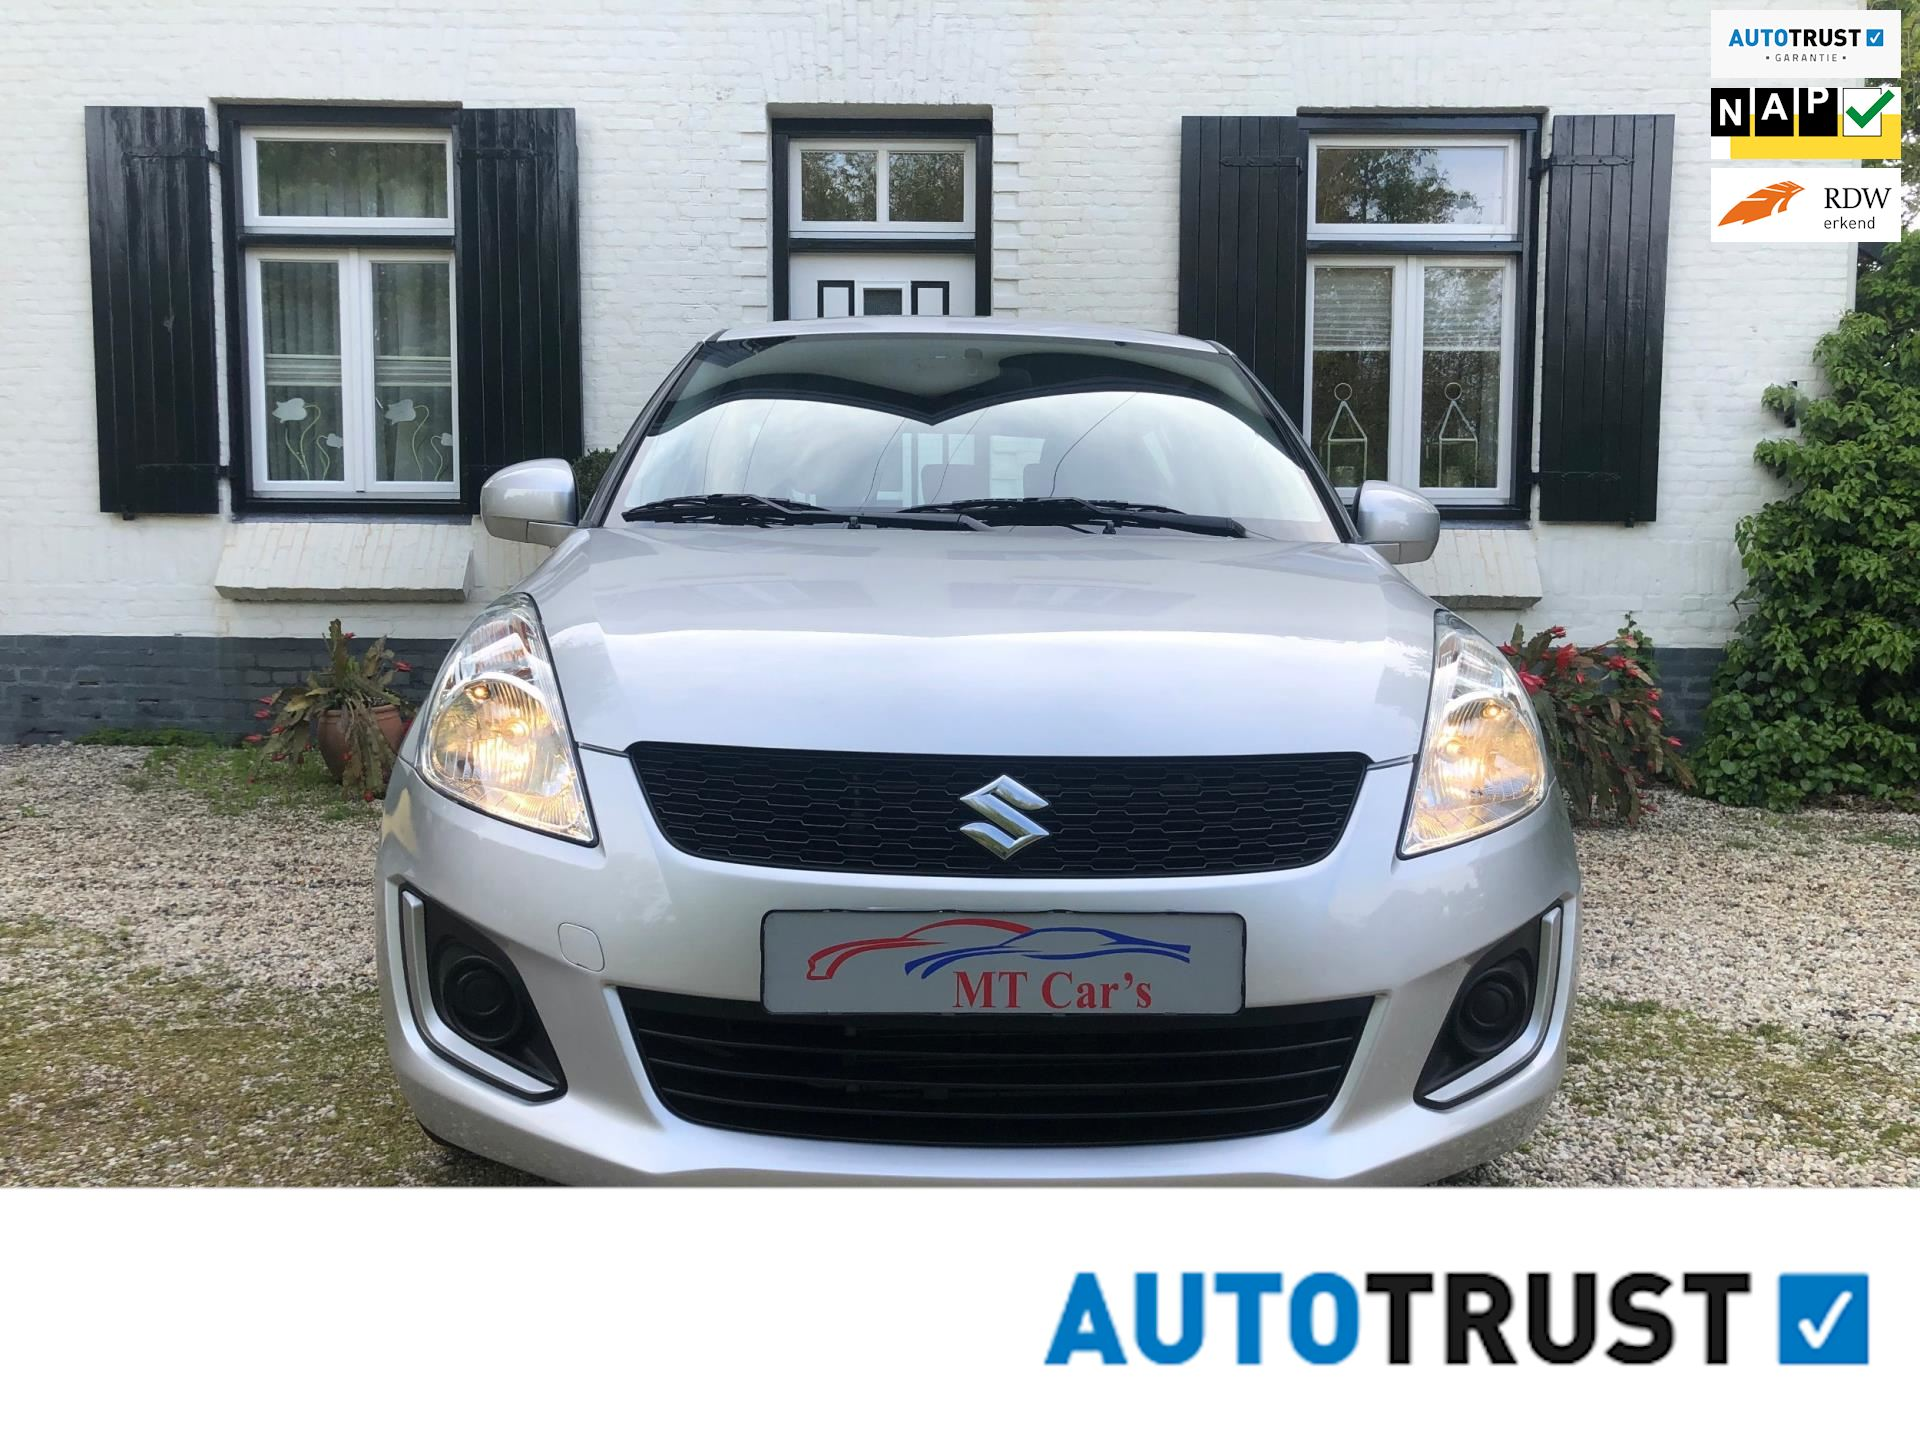 Suzuki Swift occasion - M.T.  Car's & Carcleaningcenter